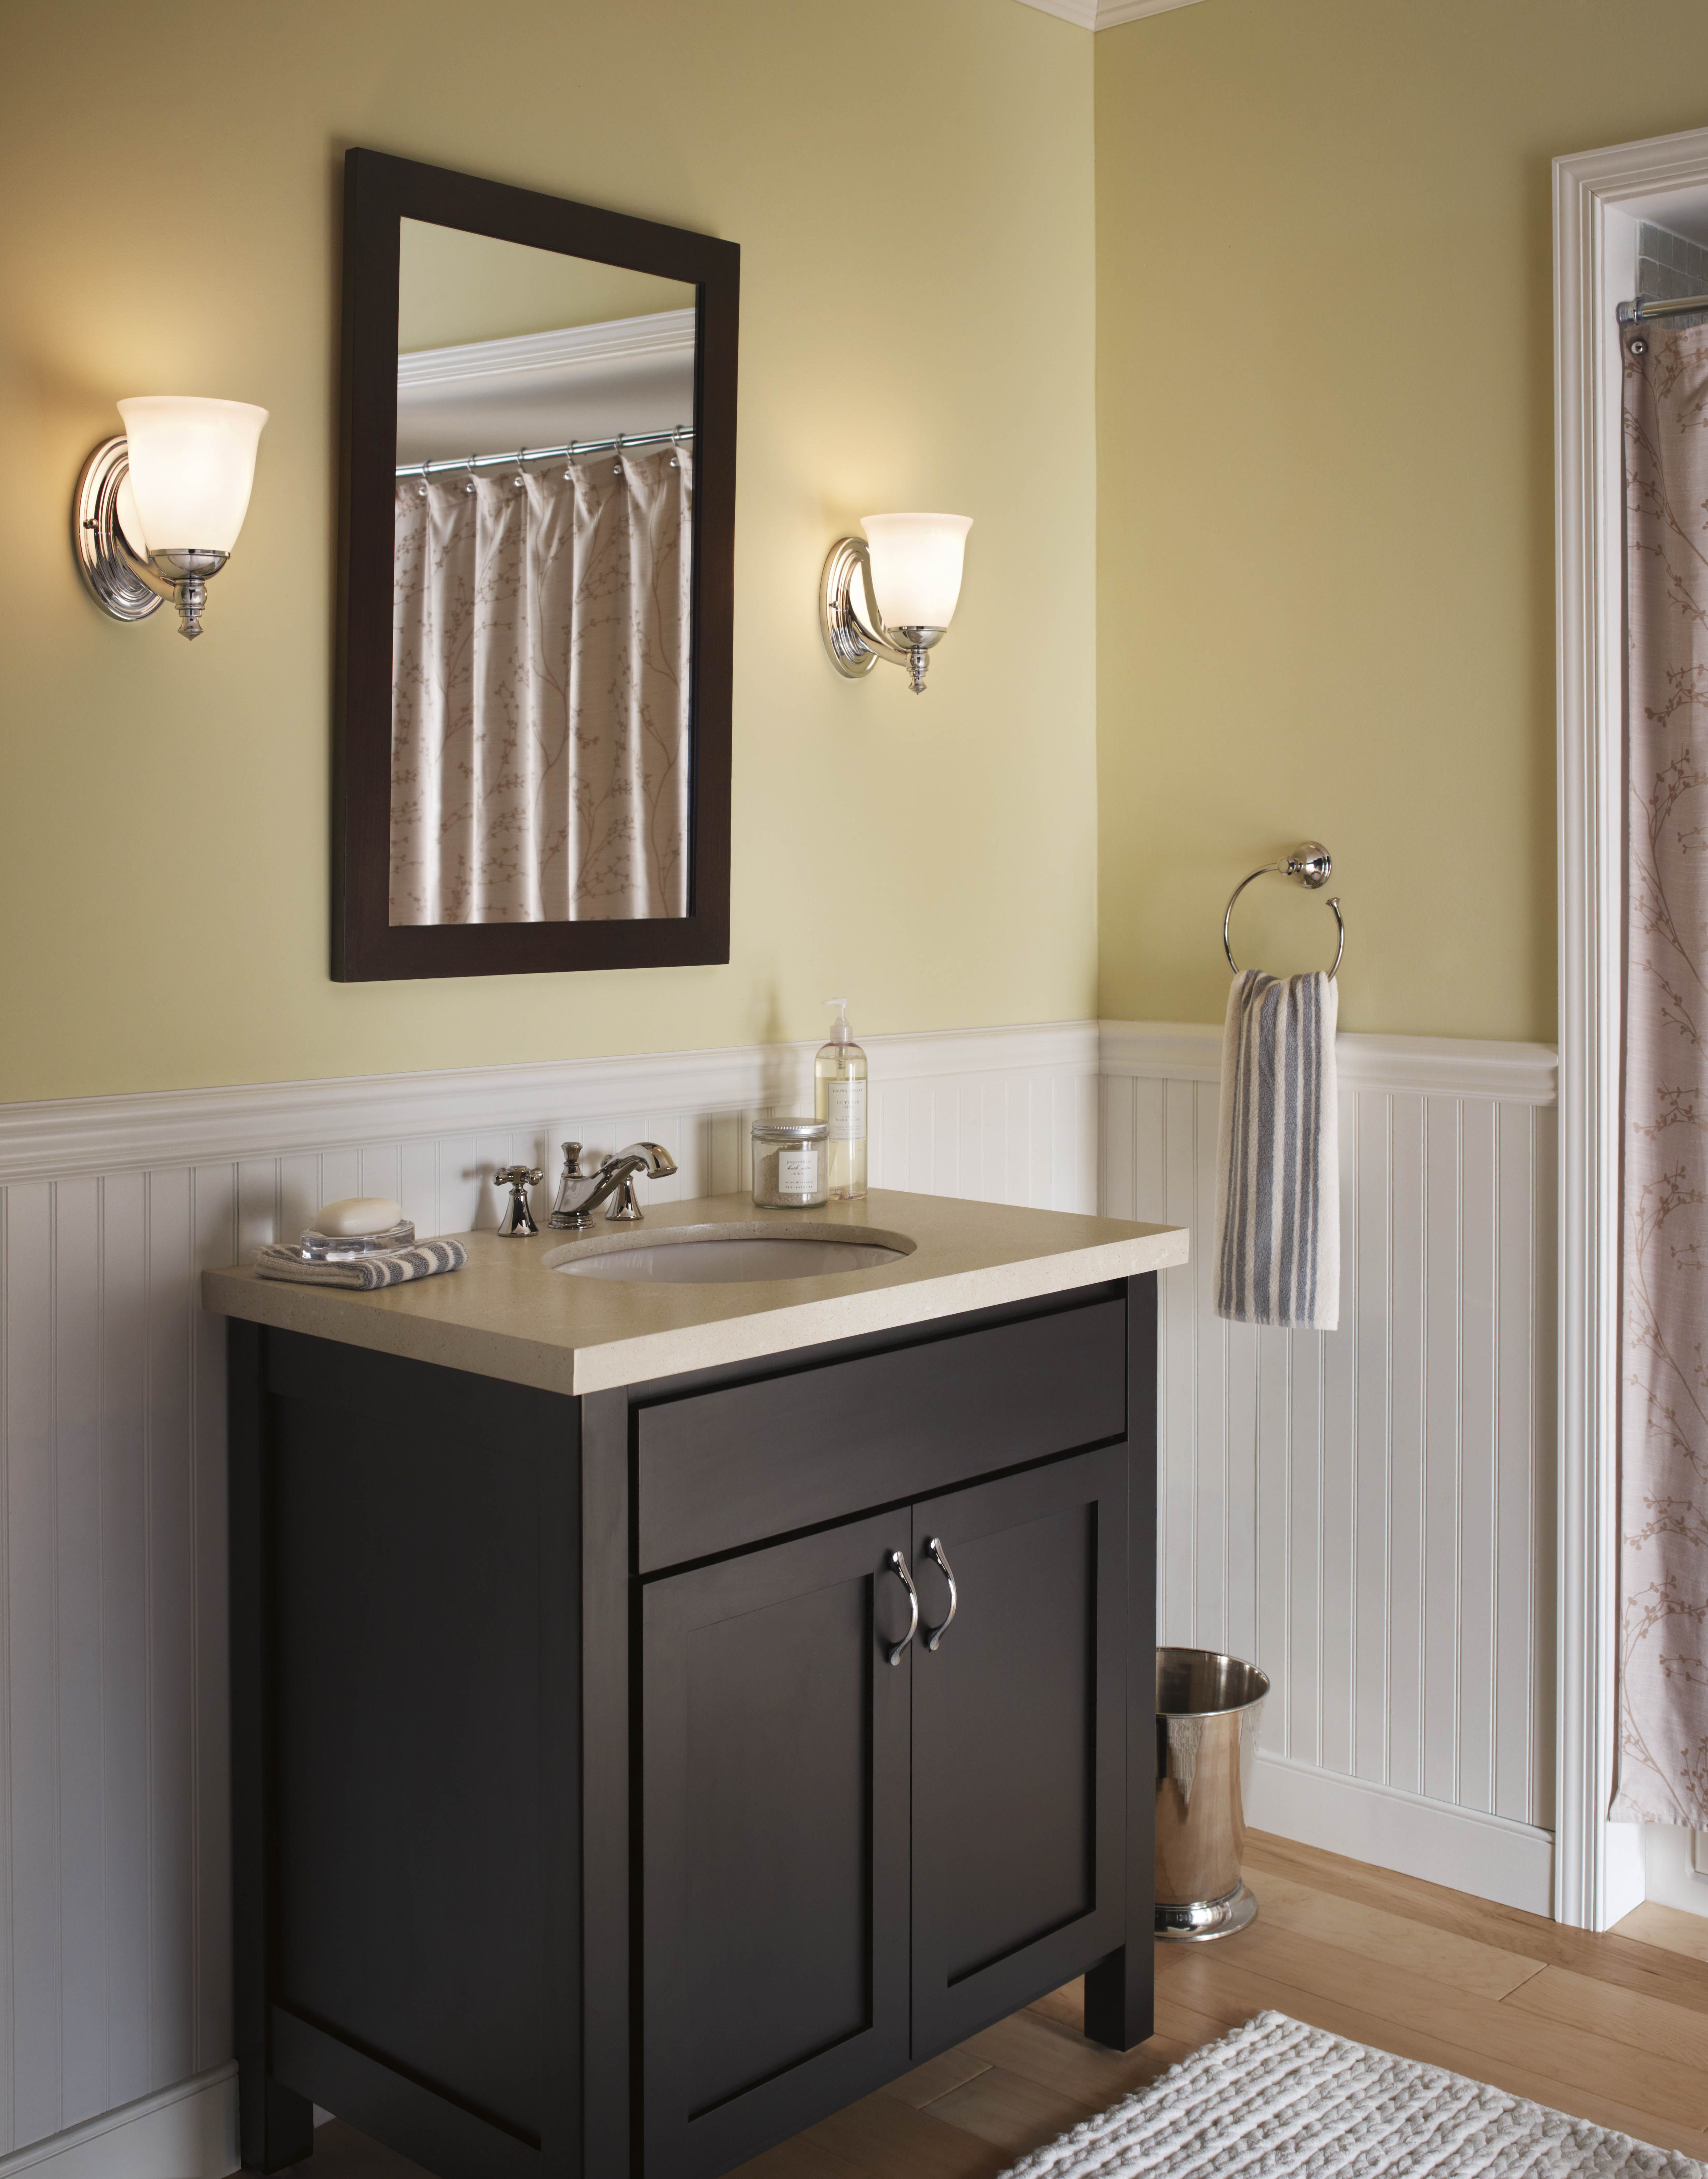 Eliminate shadows: The key to lighting your bathroom is to provide ...